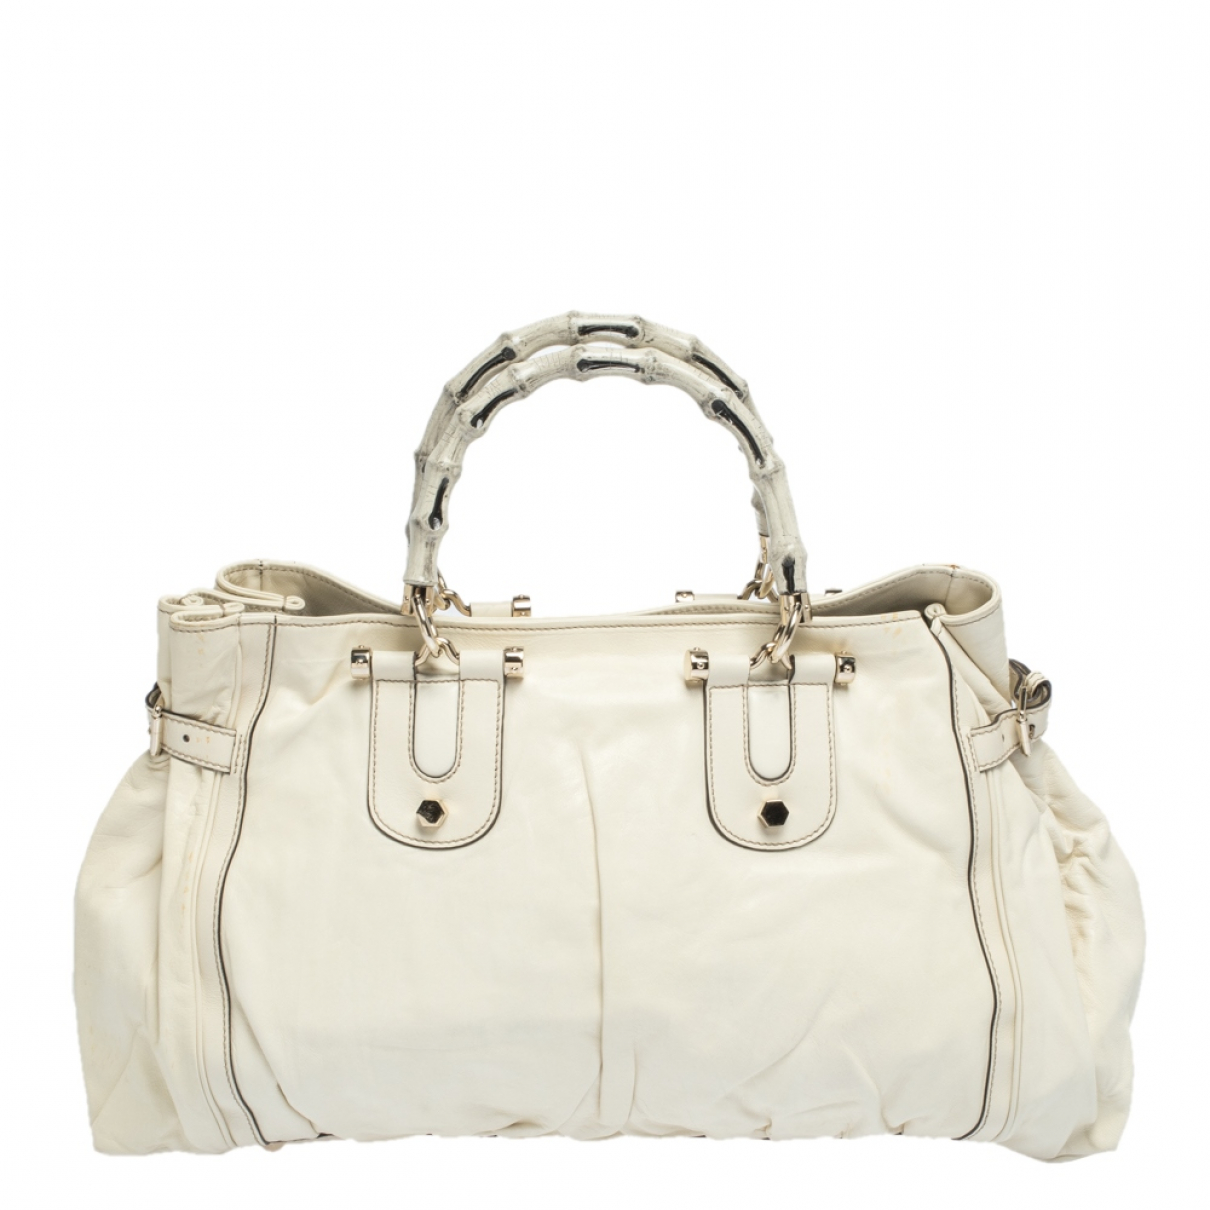 Gucci Bamboo White Leather handbag for Women N